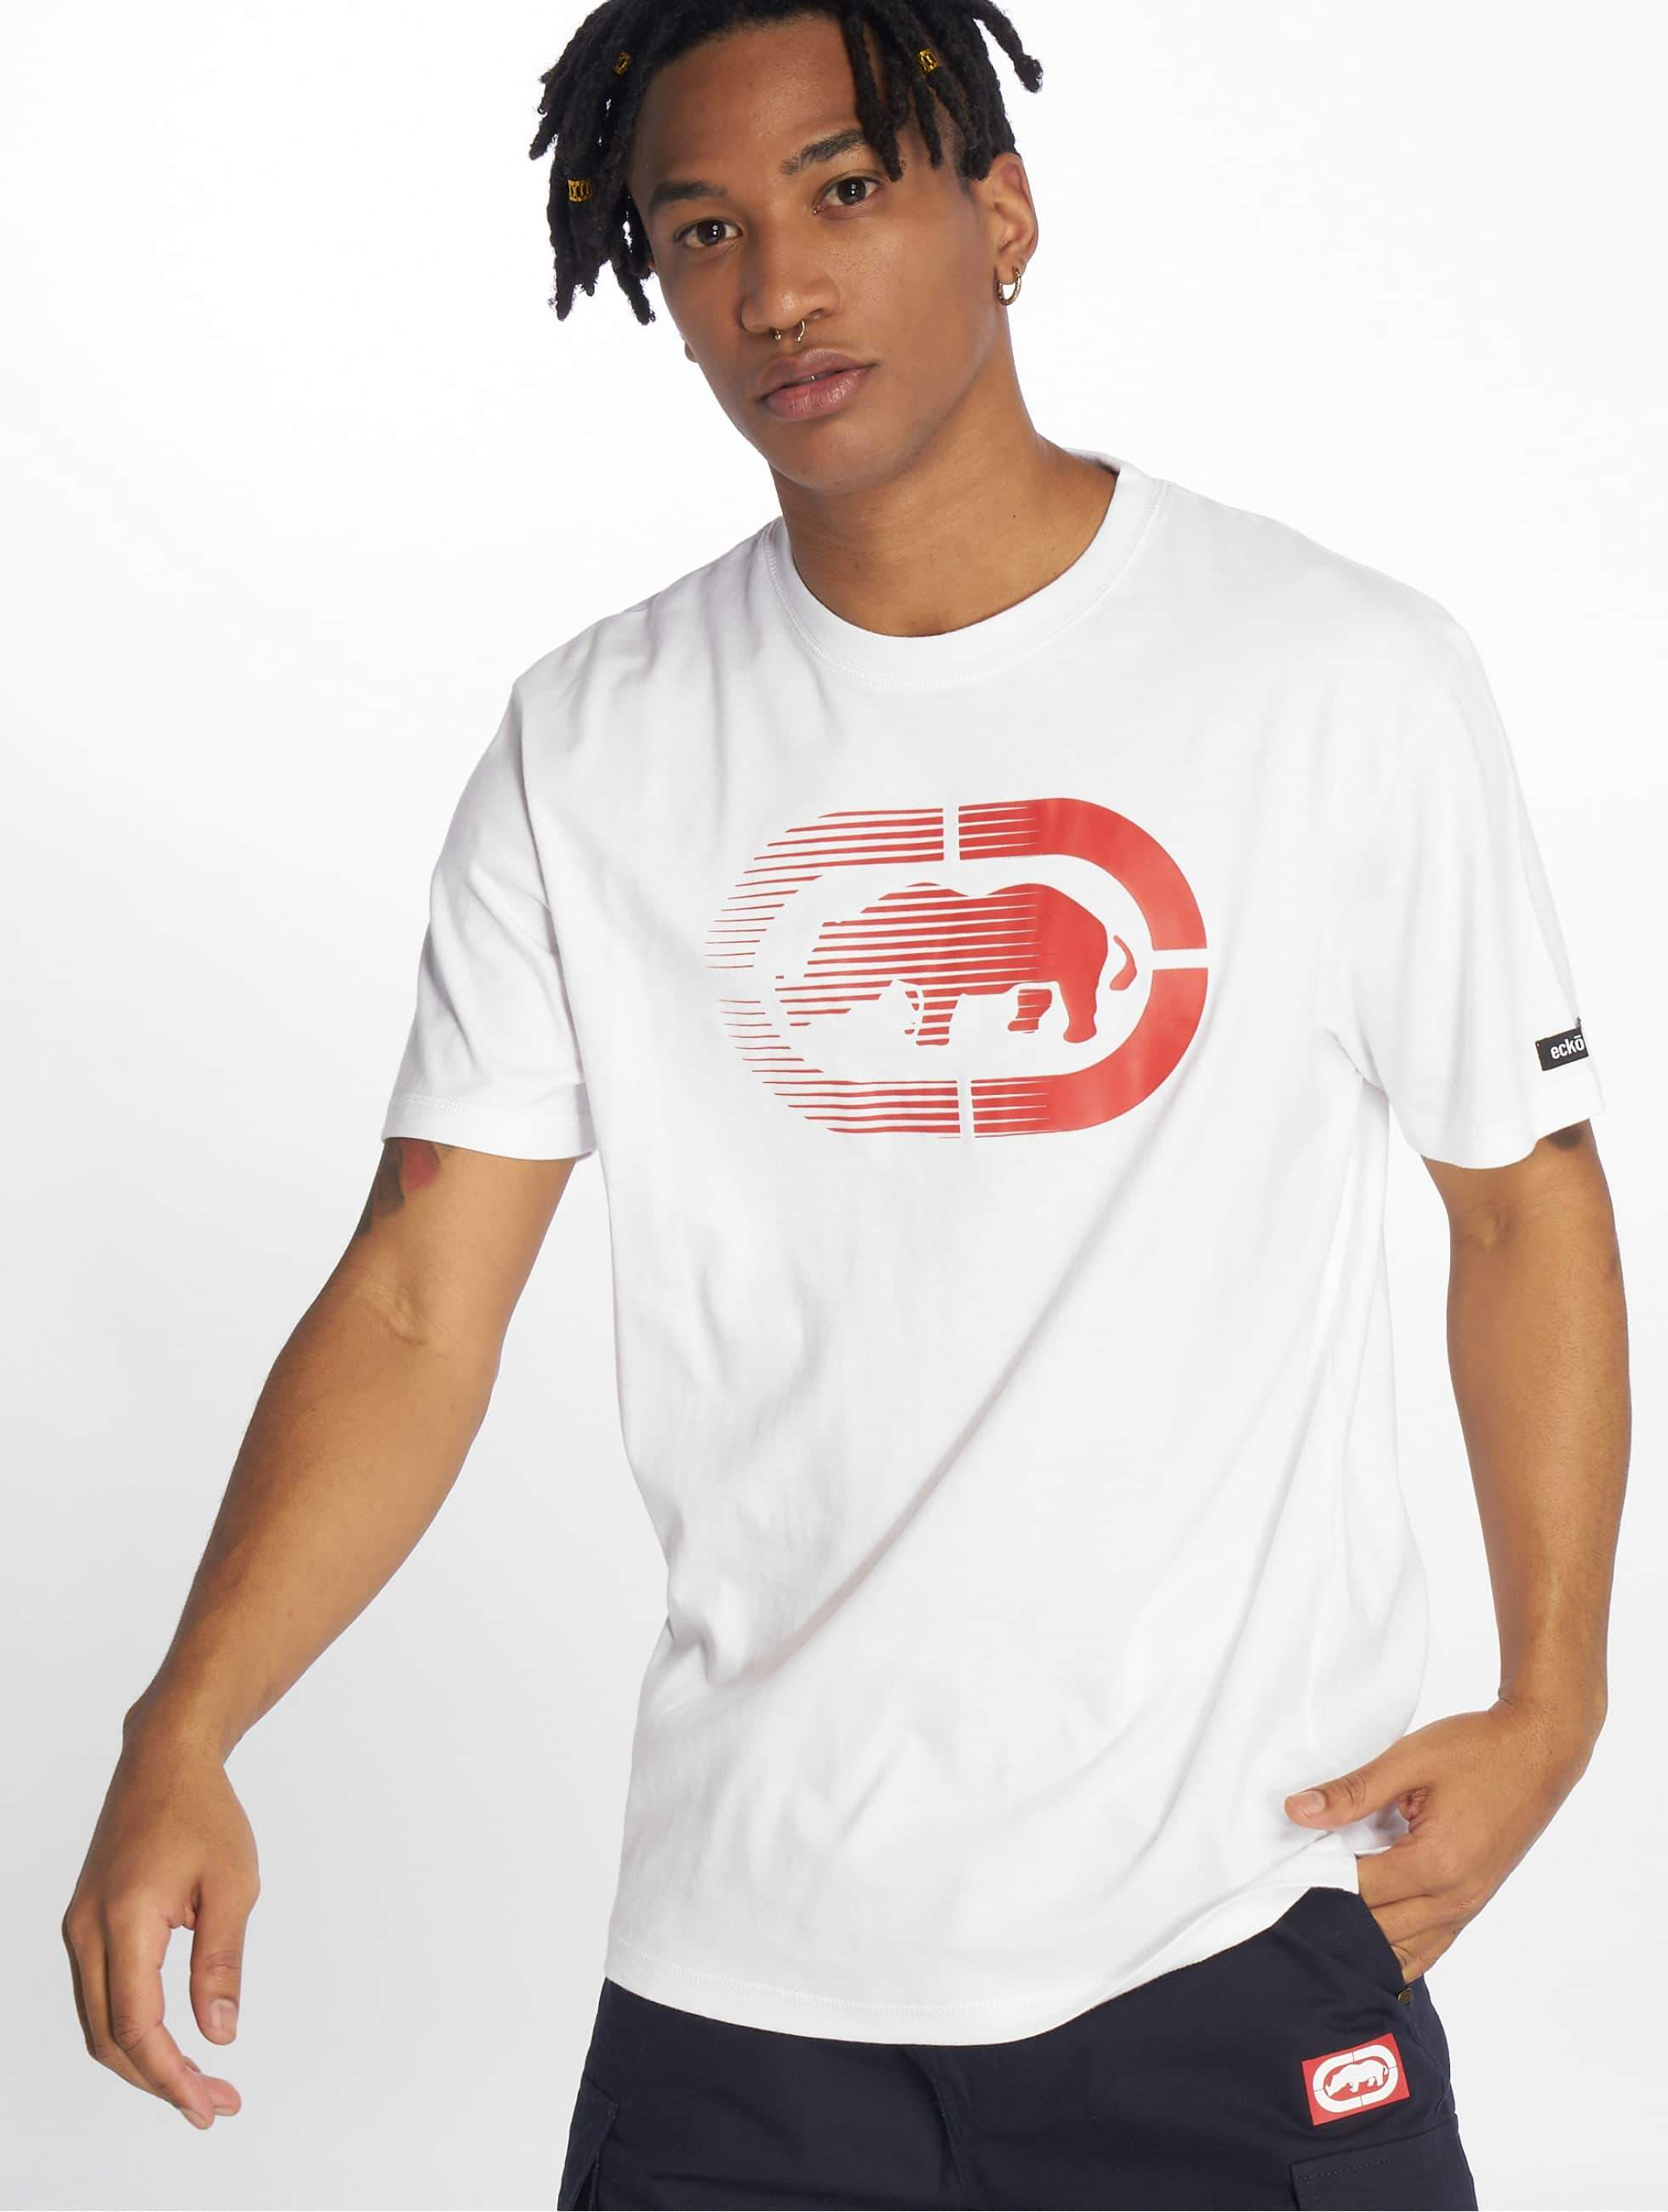 Ecko Unltd. / T-Shirt 5050 in white M